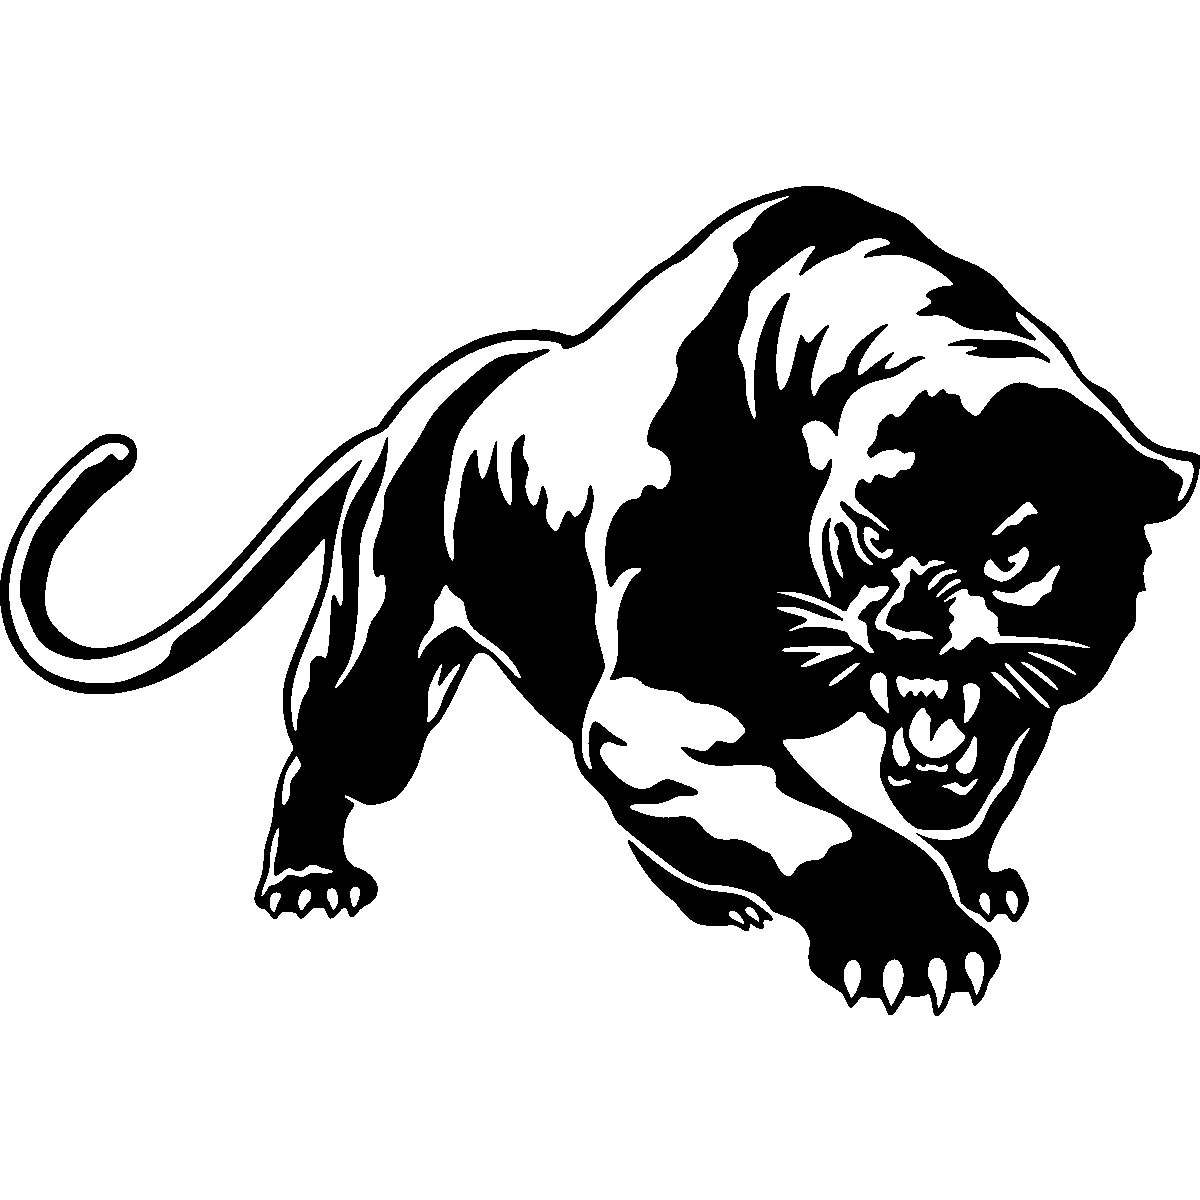 Panther Wall Car Sticker Decal Black PNG Image